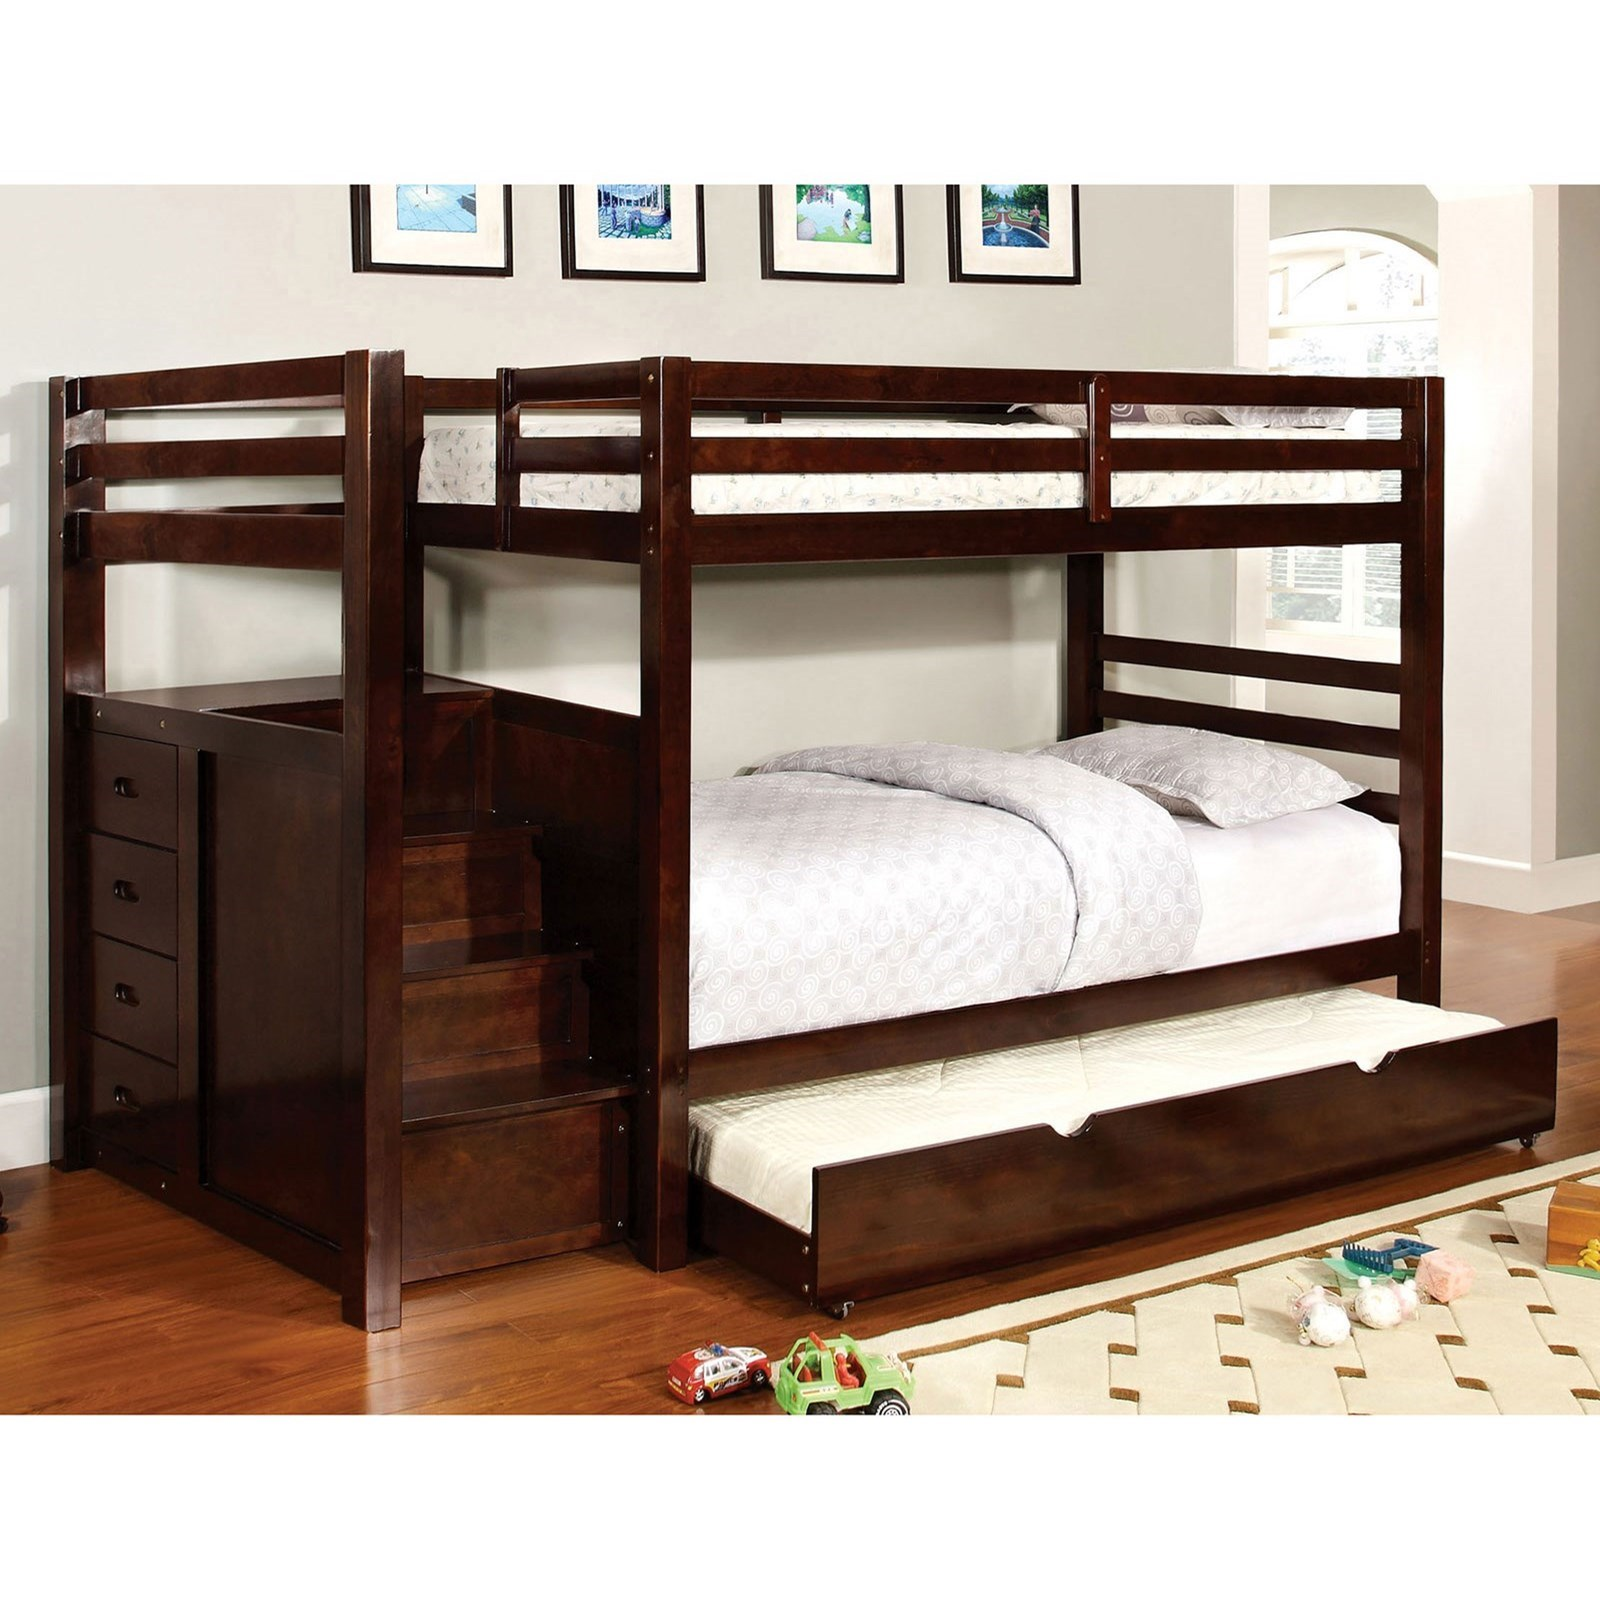 Furniture Of America Pine Ridge Twin Twin Bunk Bed W Steps Drawers